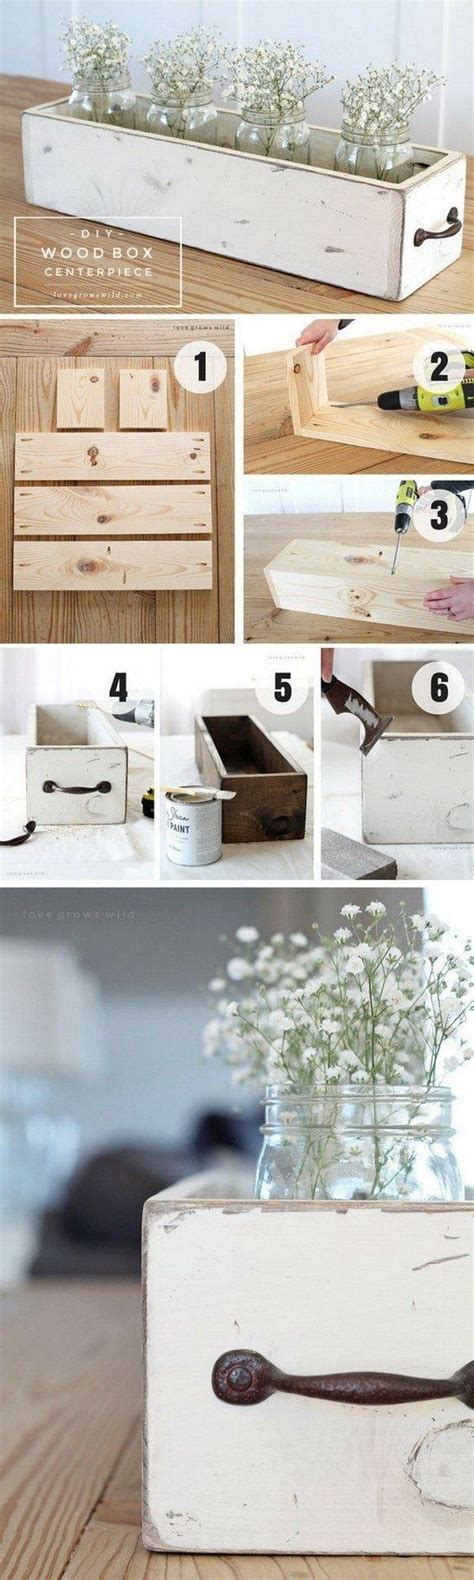 easy home projects for home decor diy hanging shelves 17 easy diy home decor craft